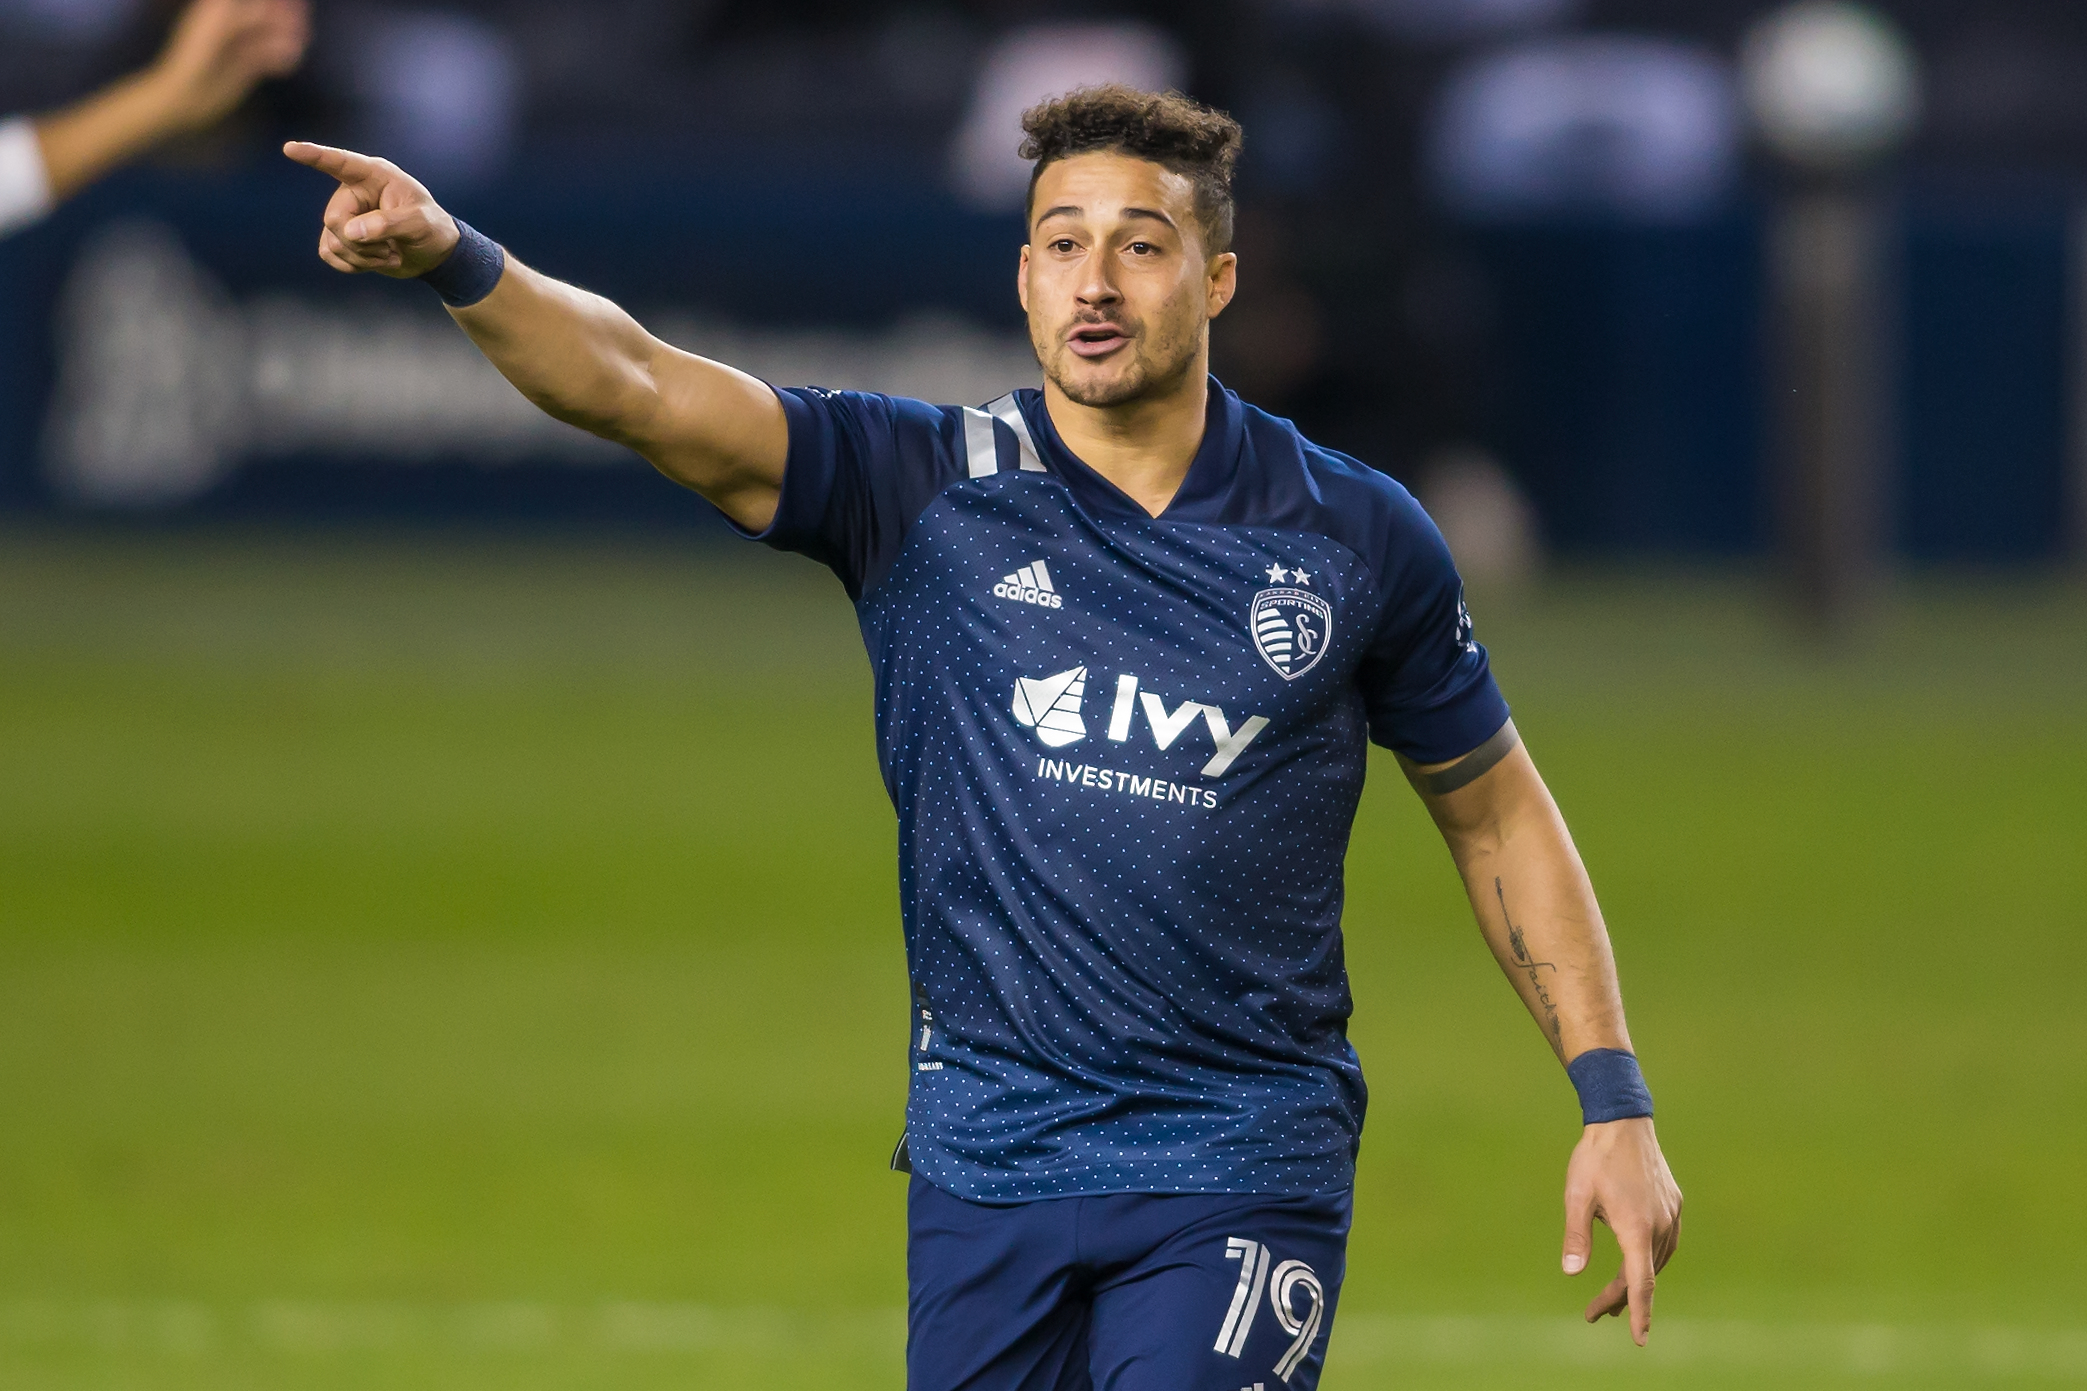 SOCCER: NOV 22 MLS Cup Playoffs Western Conference Round One - San Jose at Sporting KC